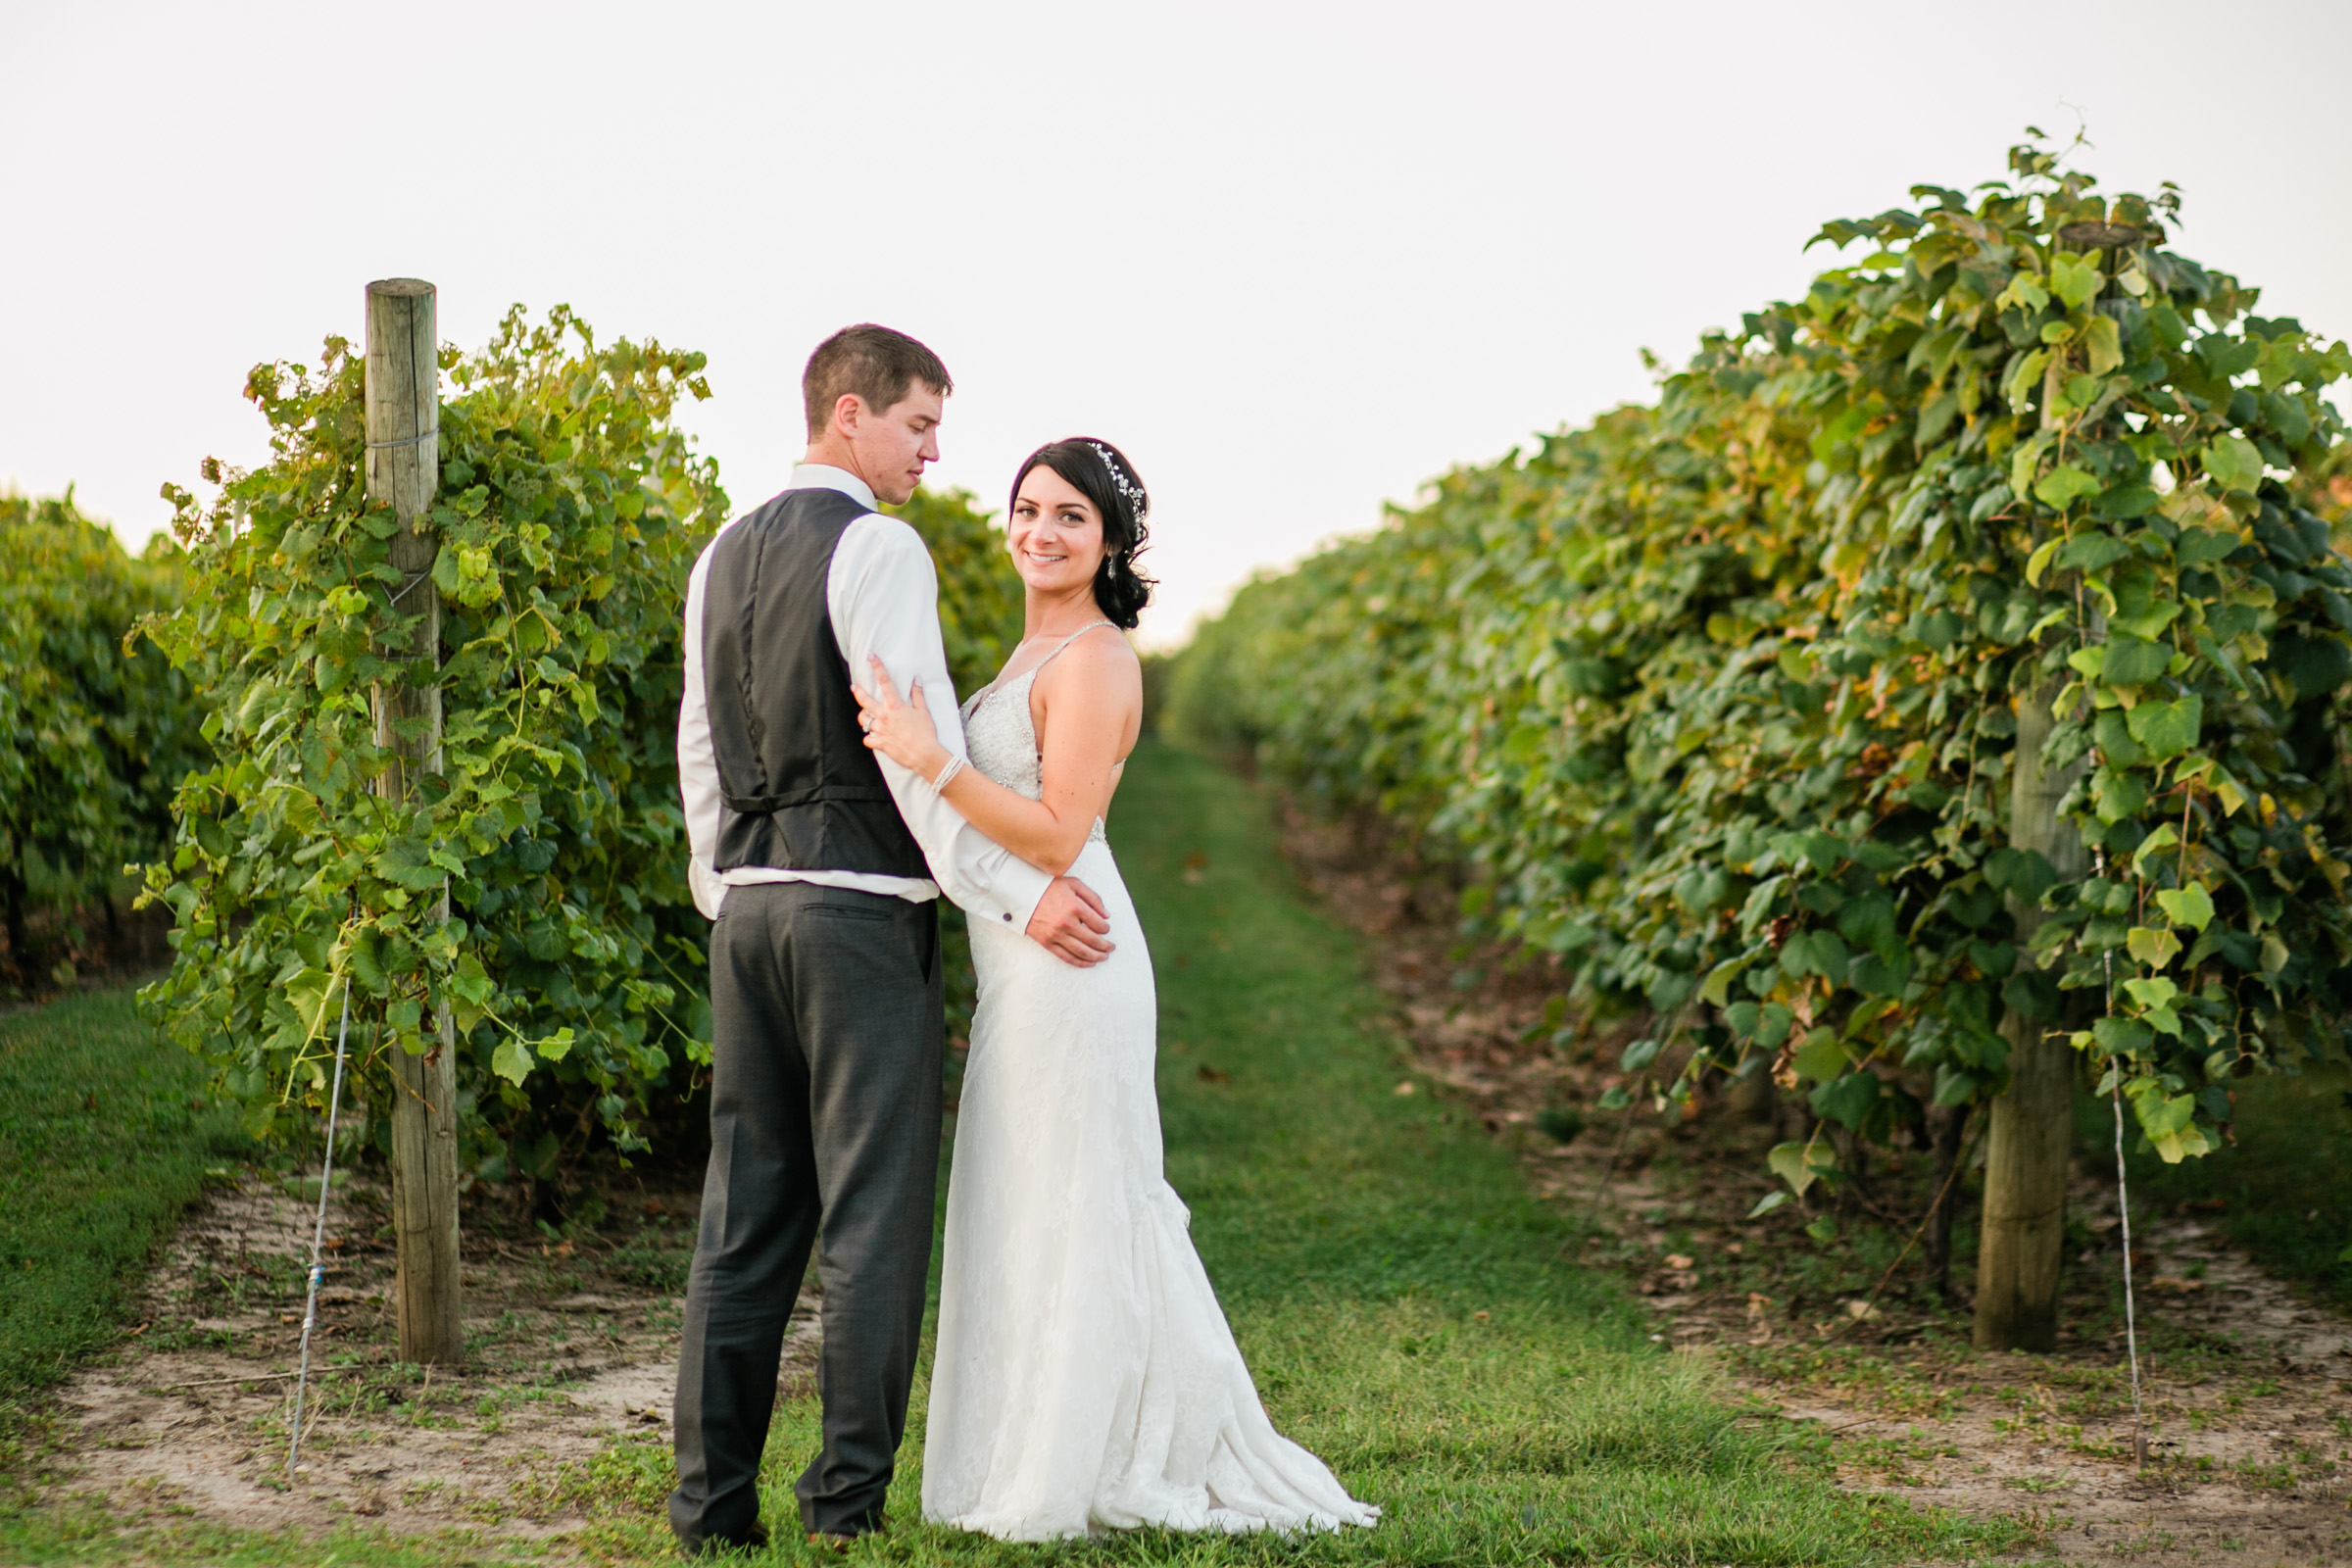 vineyard weddings iowa outdoor wedding venues winery